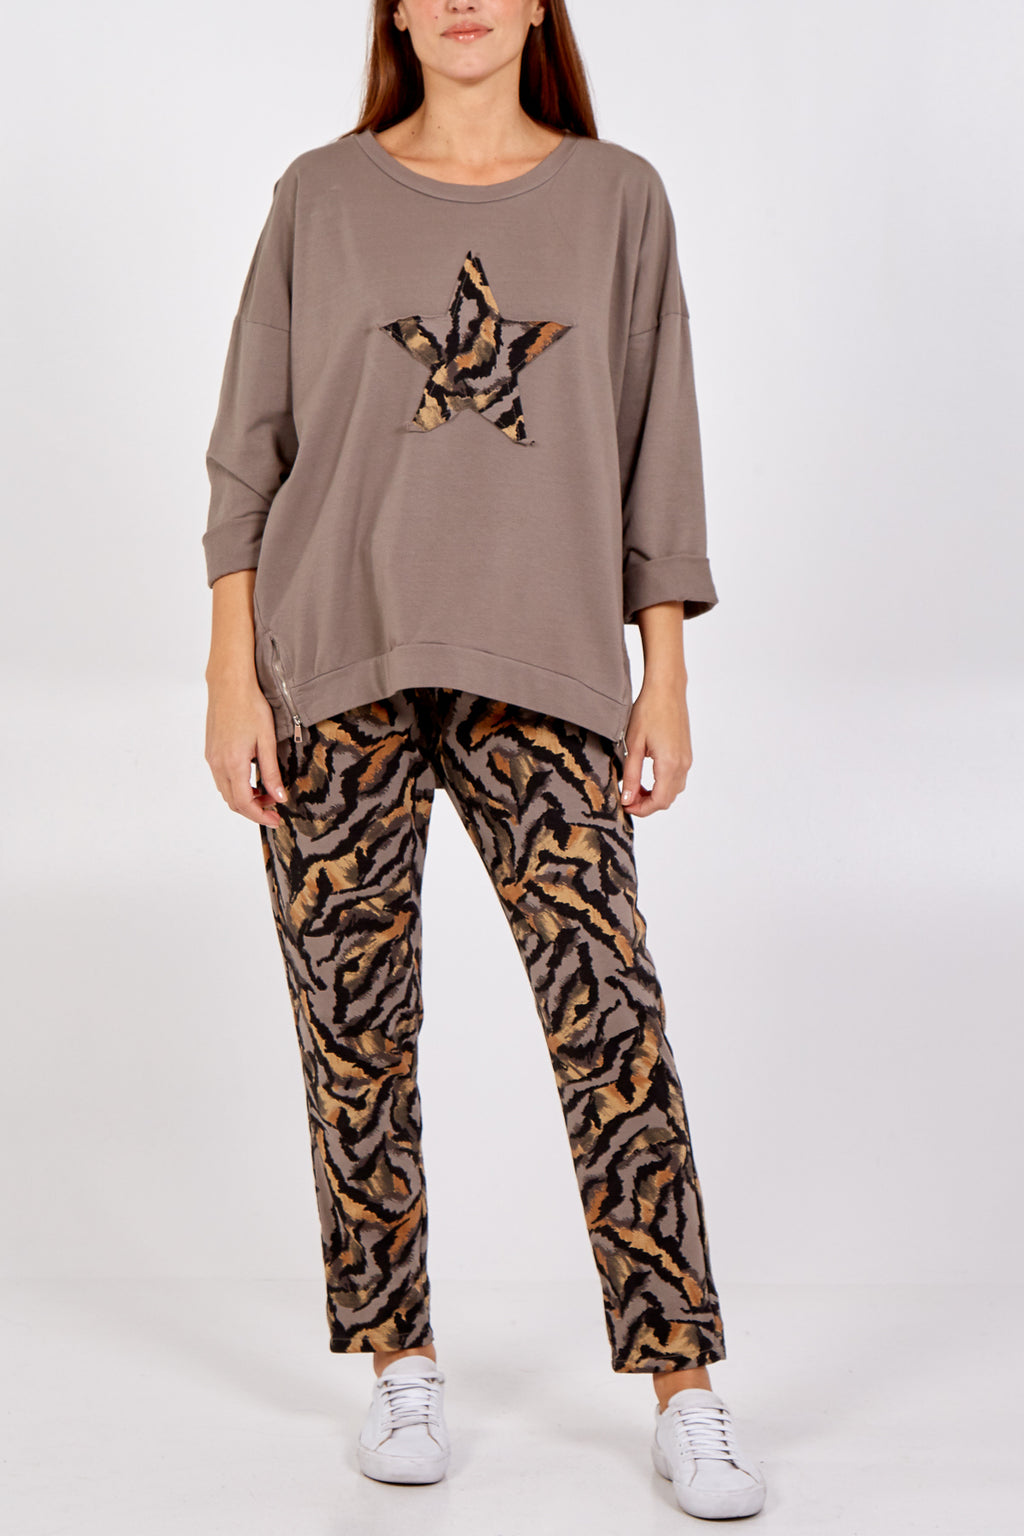 Tiger Print Star Lounge Wear Set